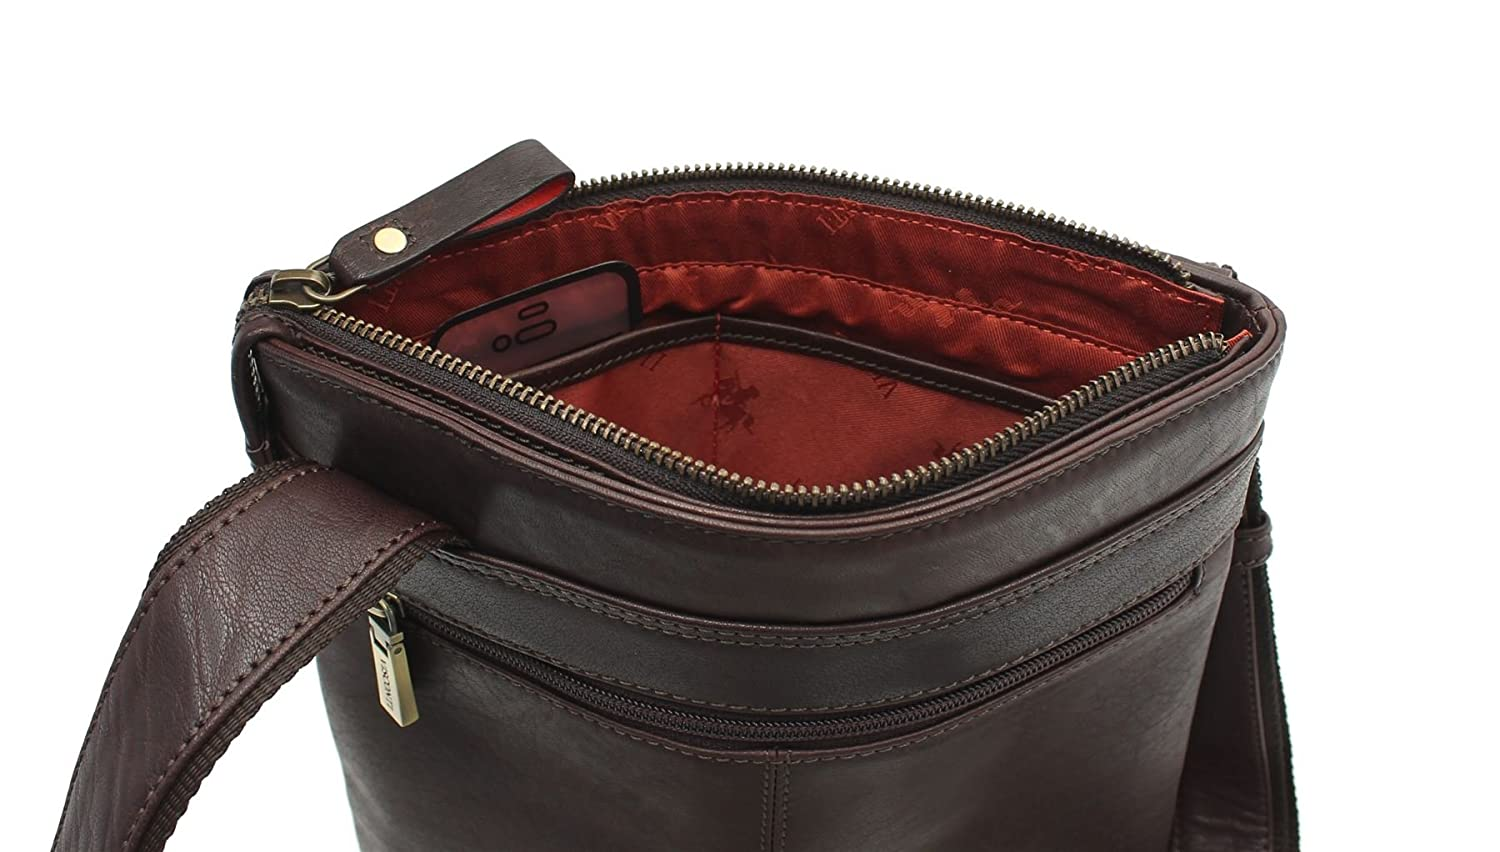 Visconti Merlin kollektion TAYLOR läder Cross Body / Messenger Bag ML25 brun BRUN